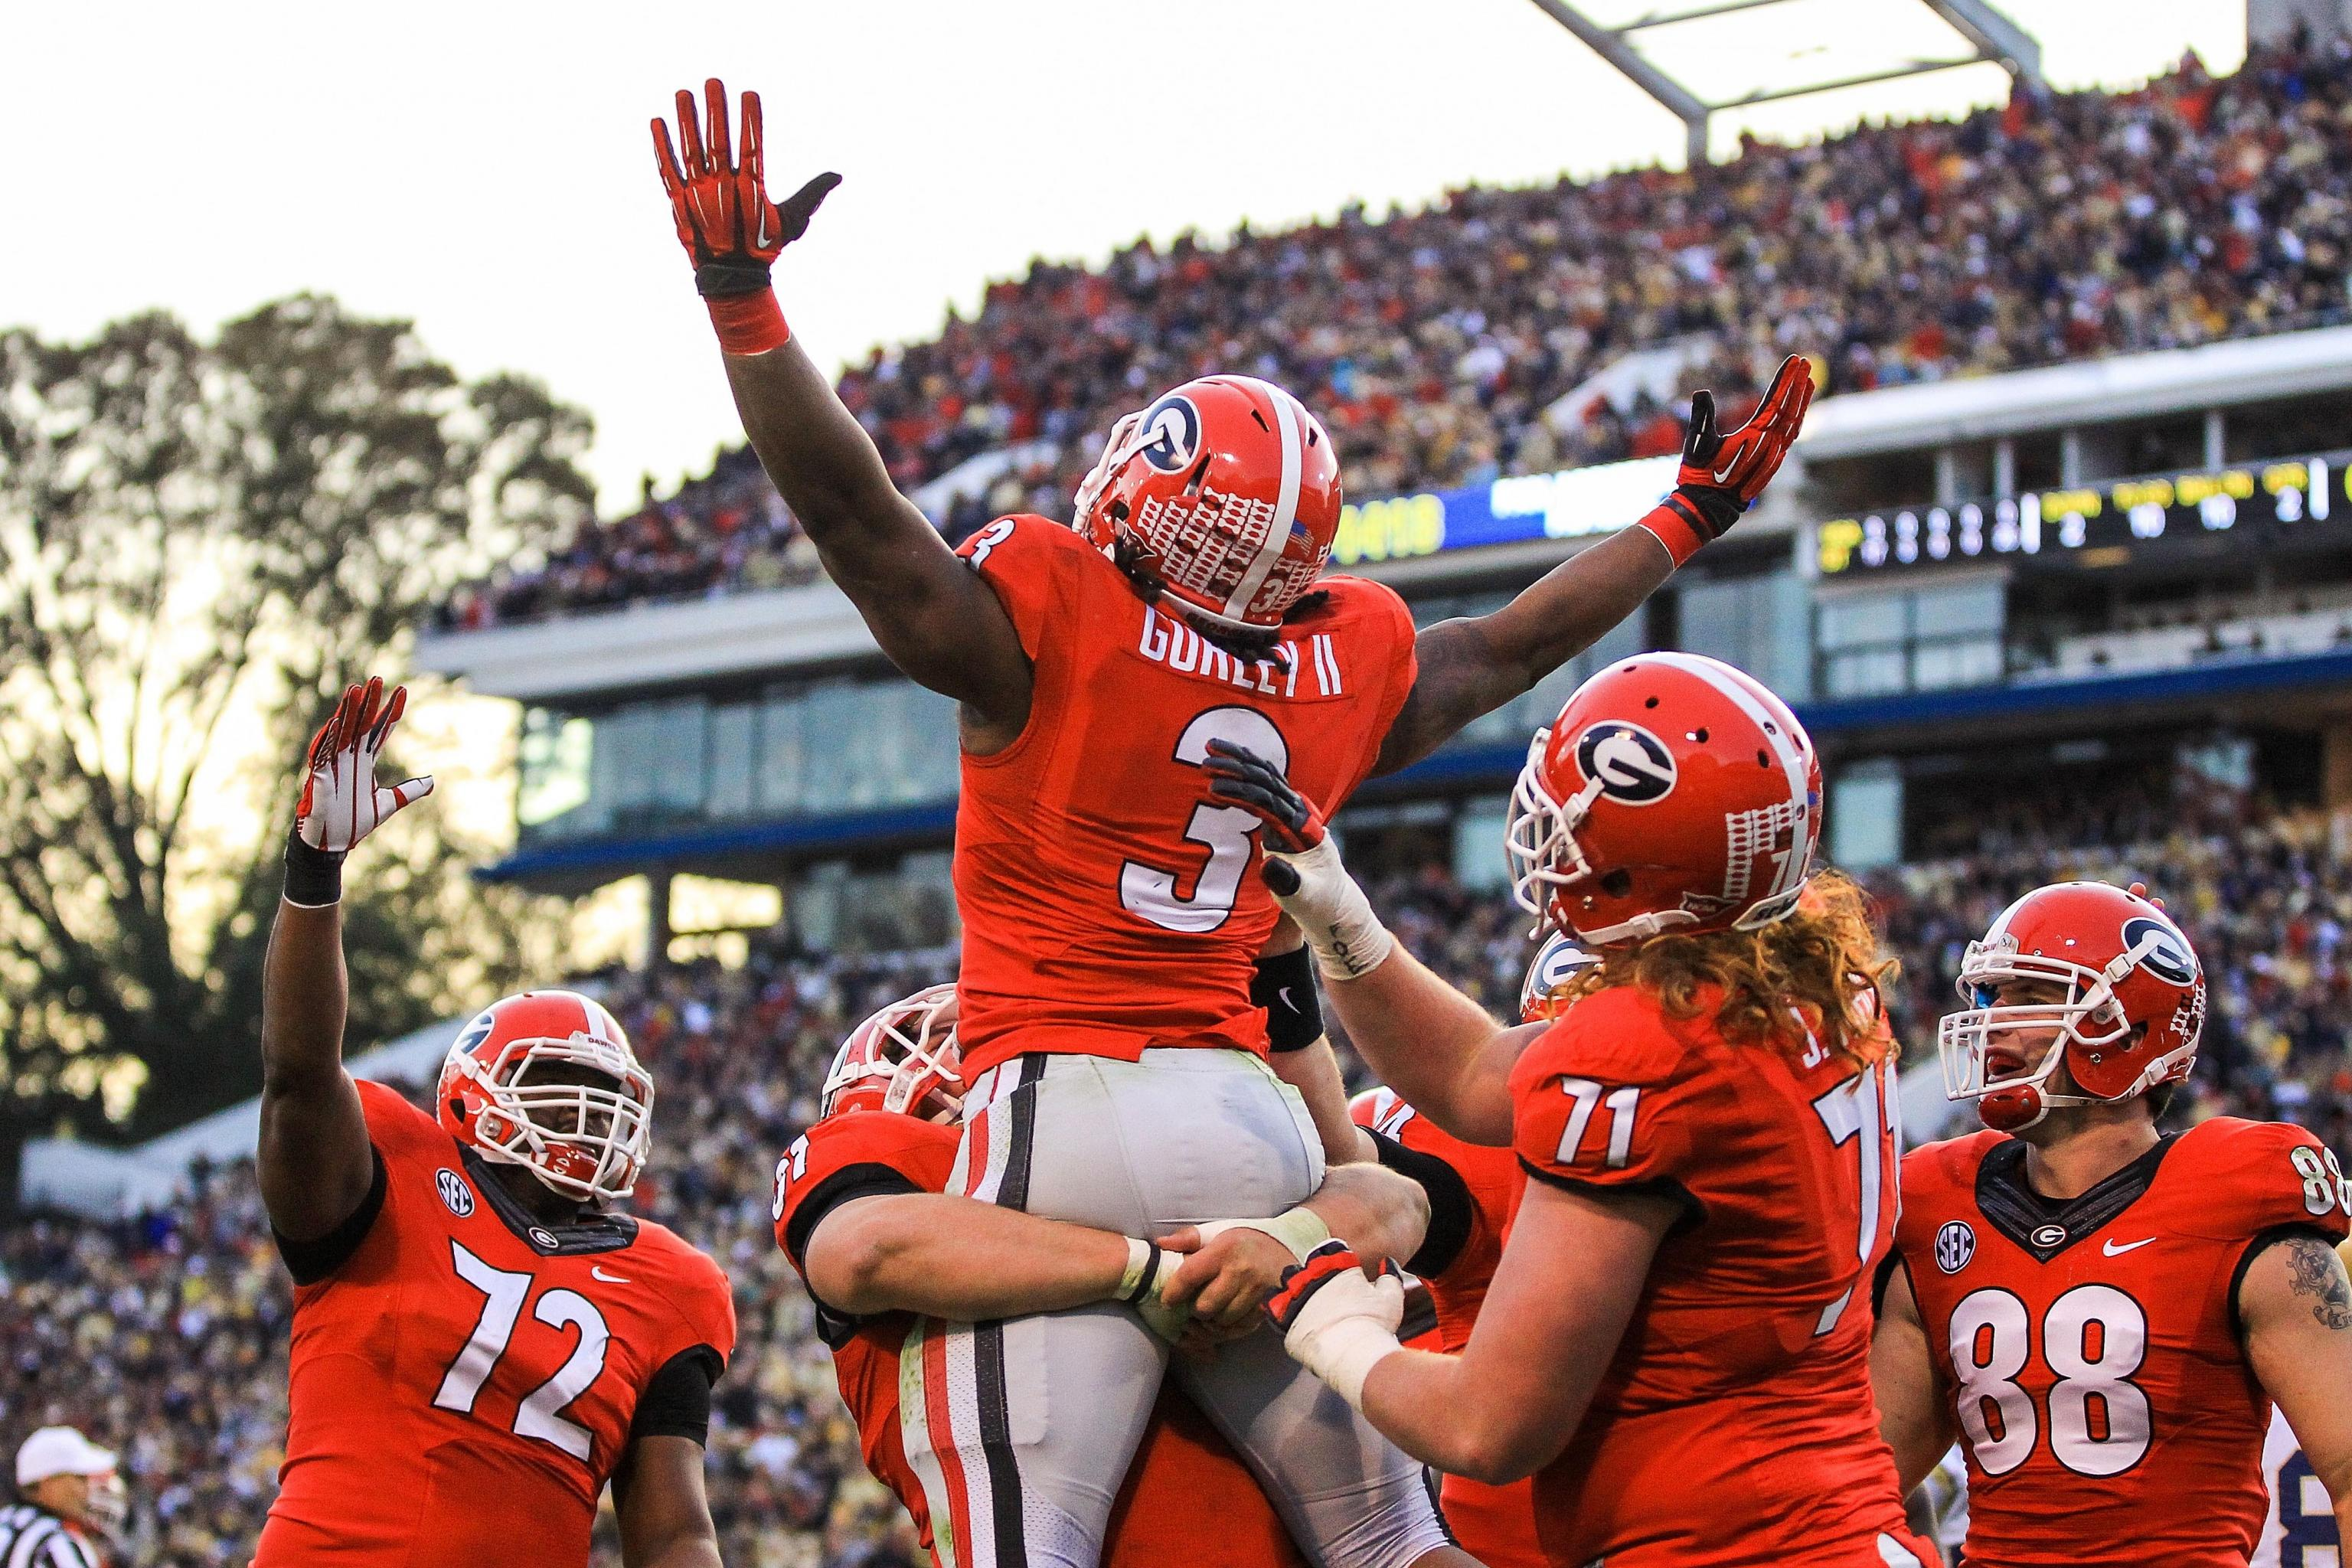 Georgia Vs Georgia Tech Score Grades And Analysis For Rivalry Game Bleacher Report Latest News Videos And Highlights